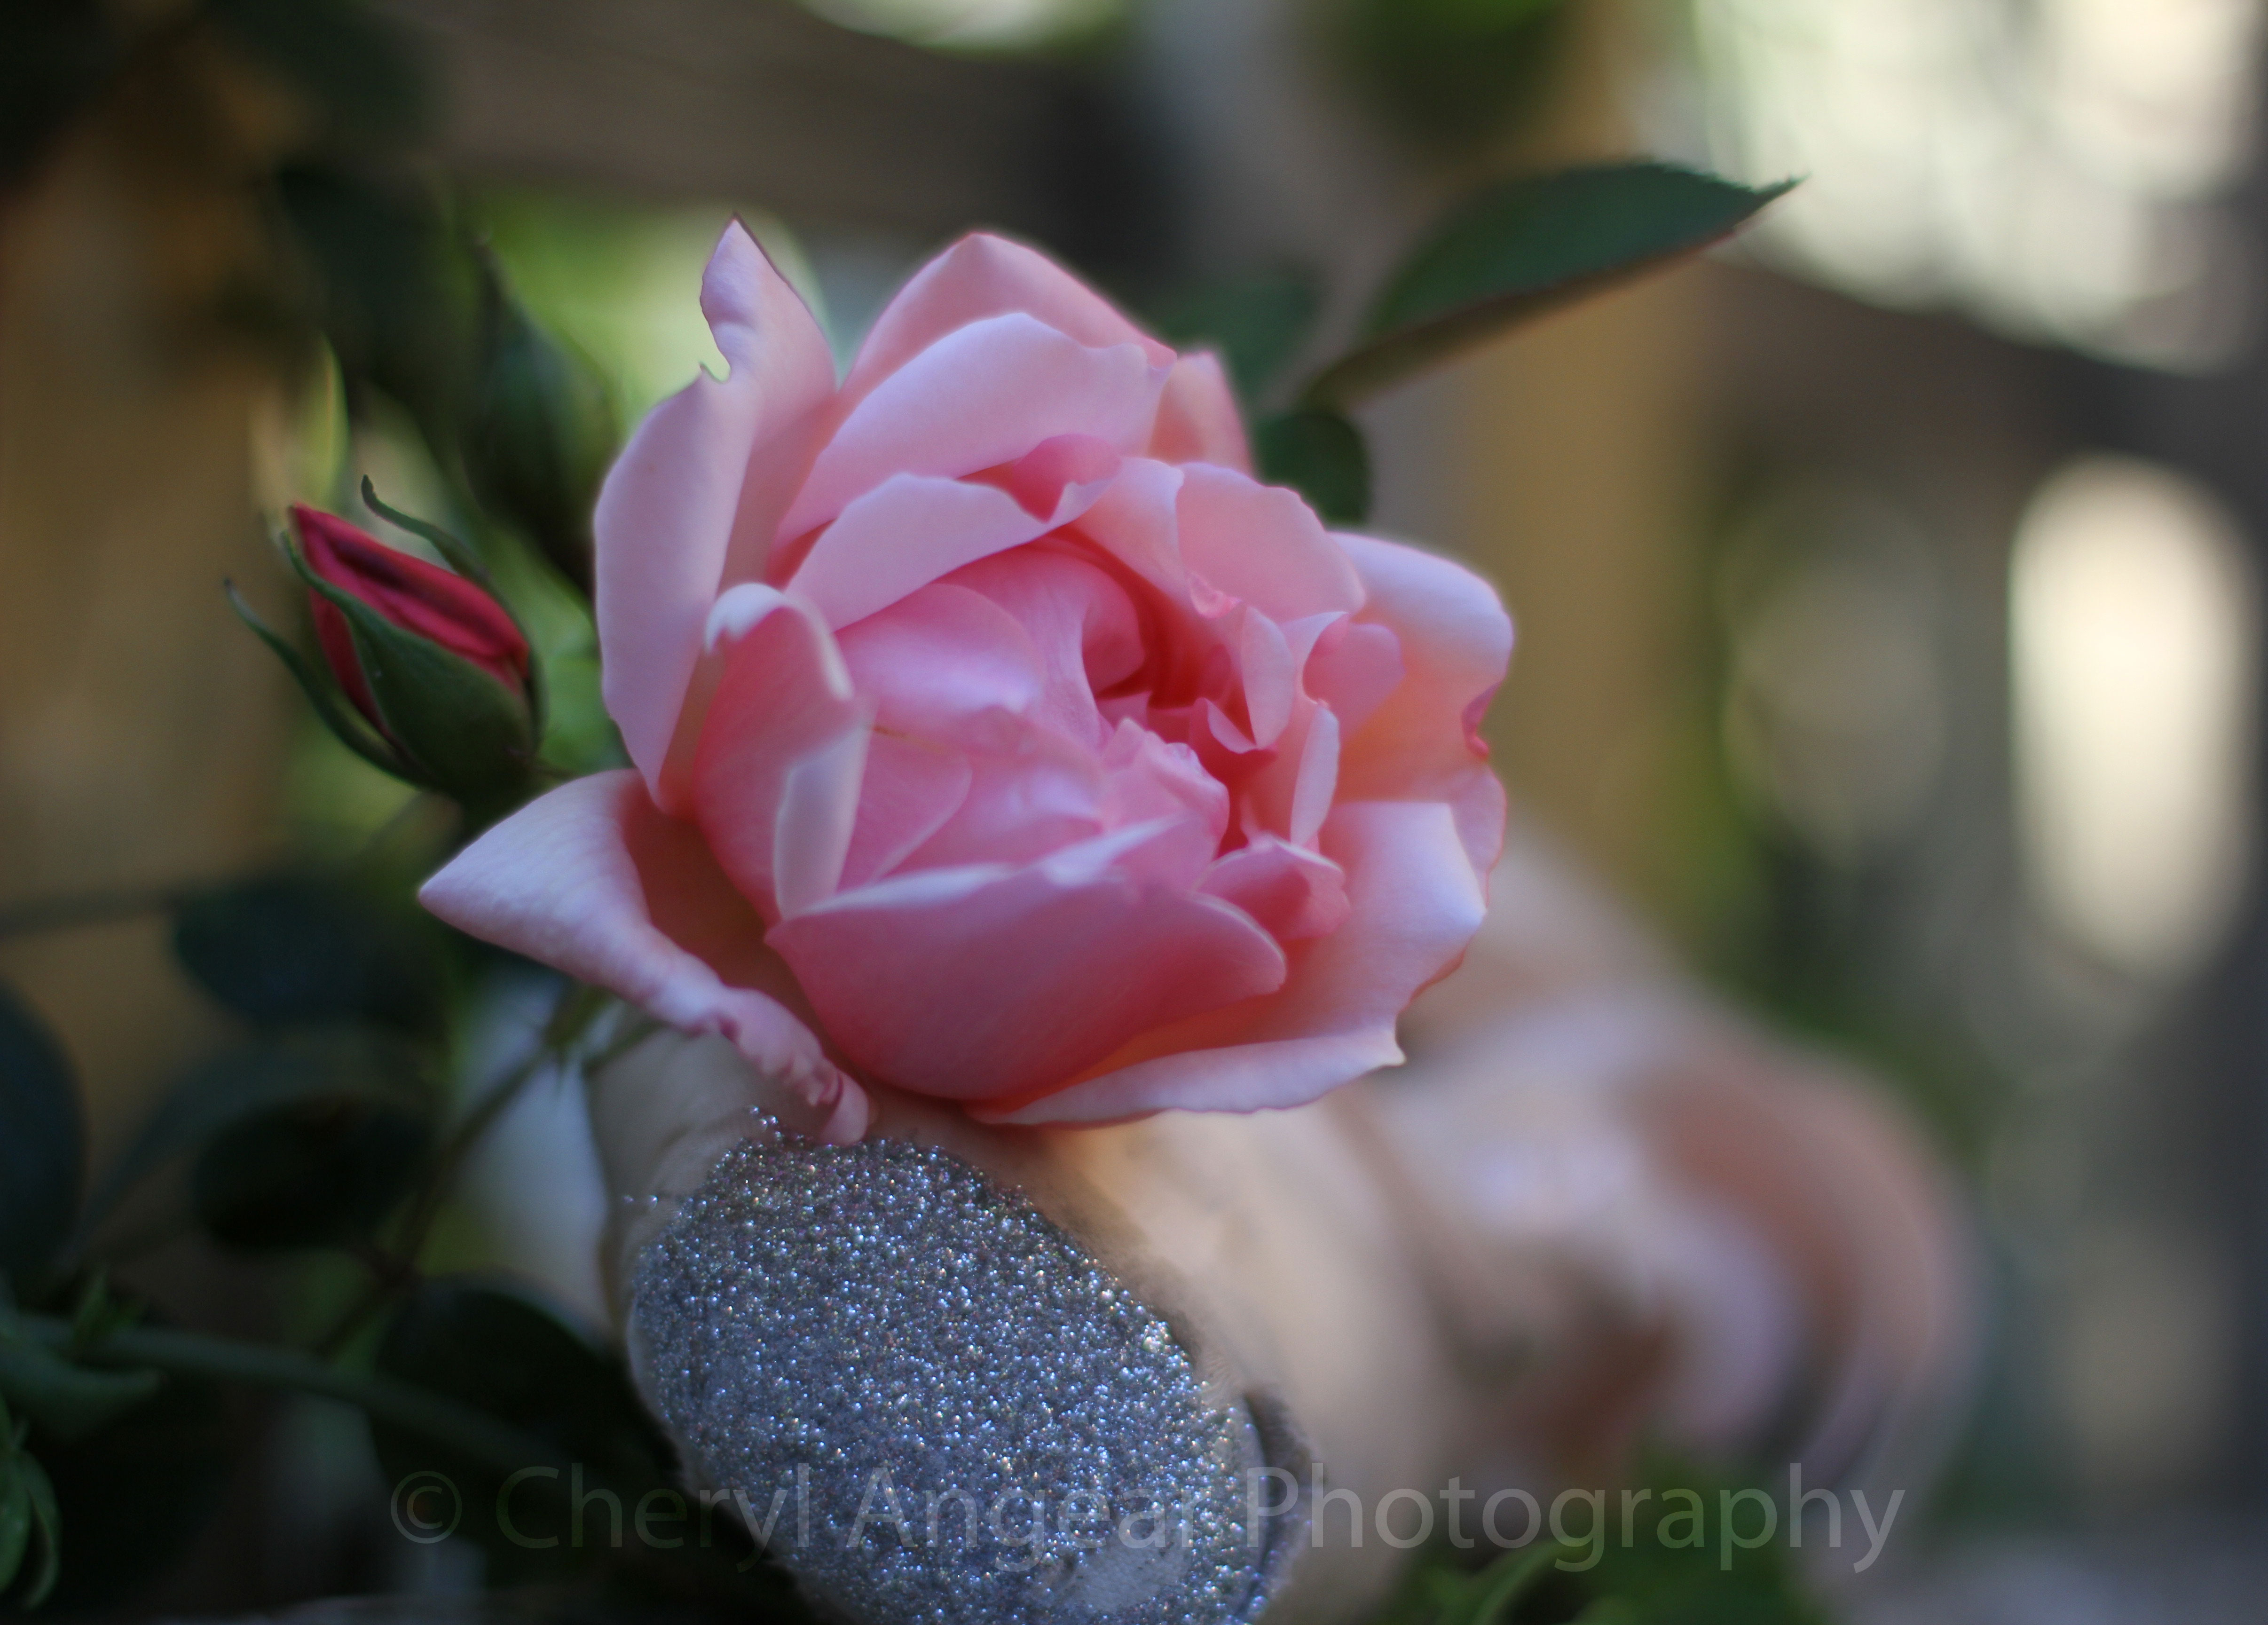 Photograph by Cheryl Angear Photography